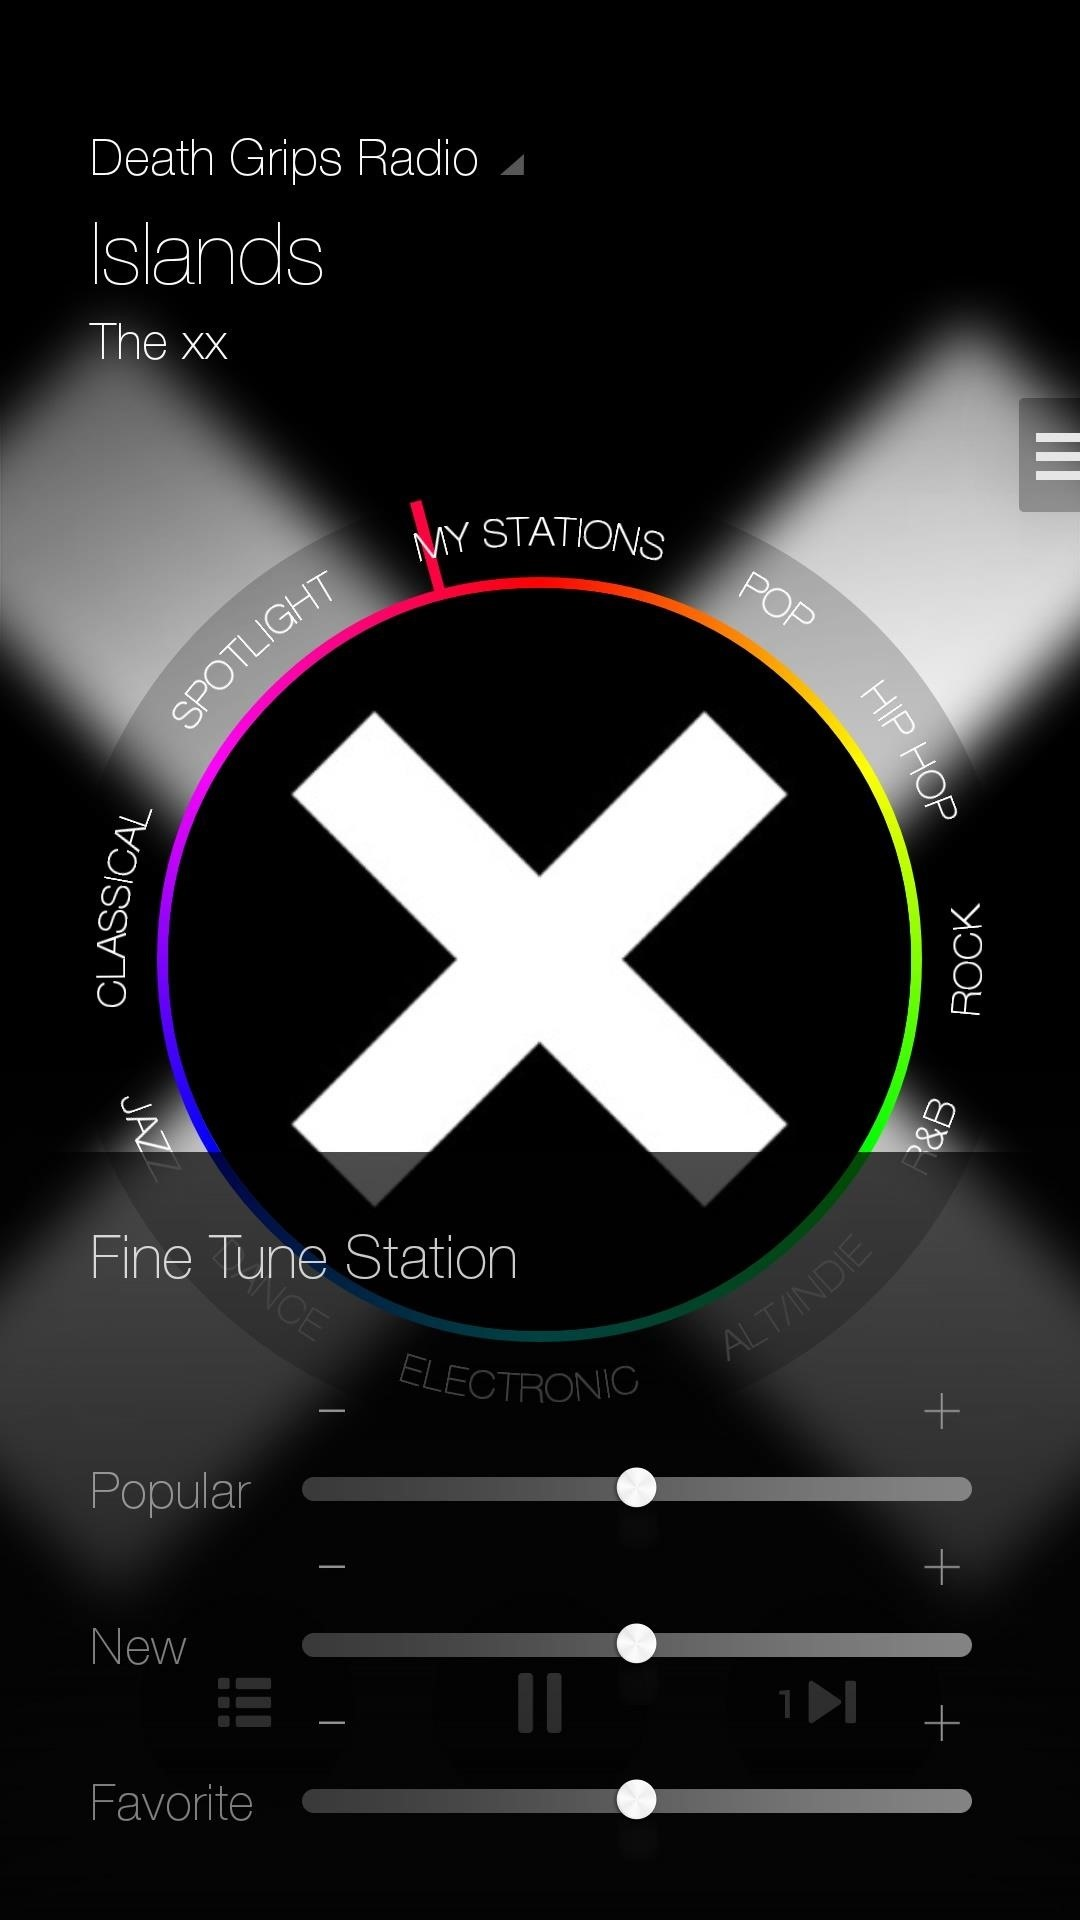 """How to Use Samsung's New Ad-Free """"Milk Music"""" Streaming Service on Your Galaxy Note 2"""